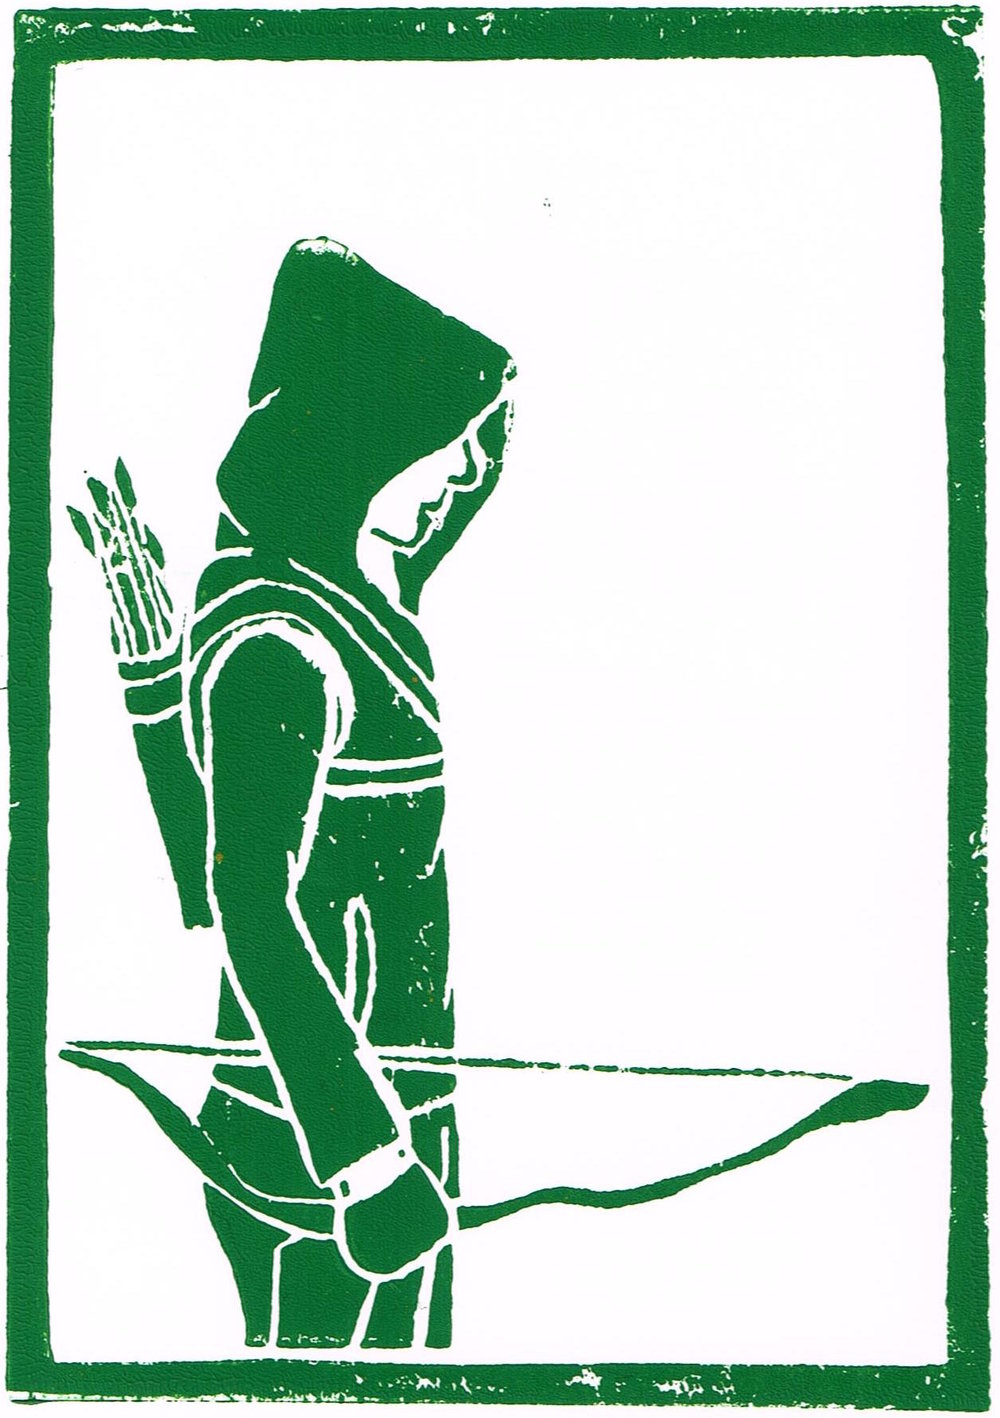 The Green Arrow in linocut print form, created as part of an event guide for AMC Expo